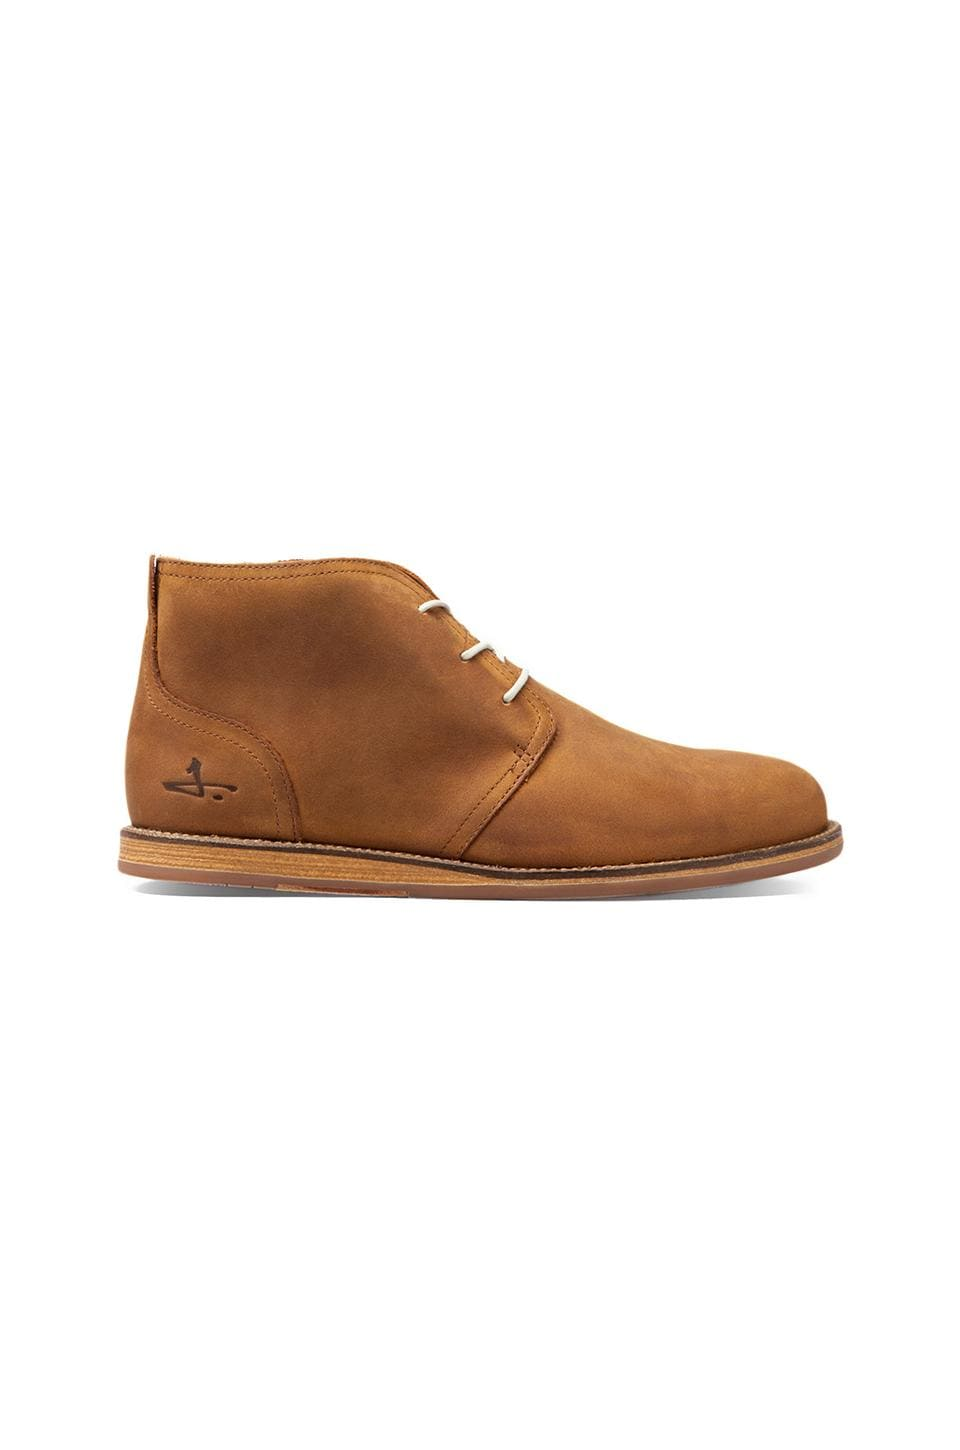 J SHOES Realm en Mid Brown